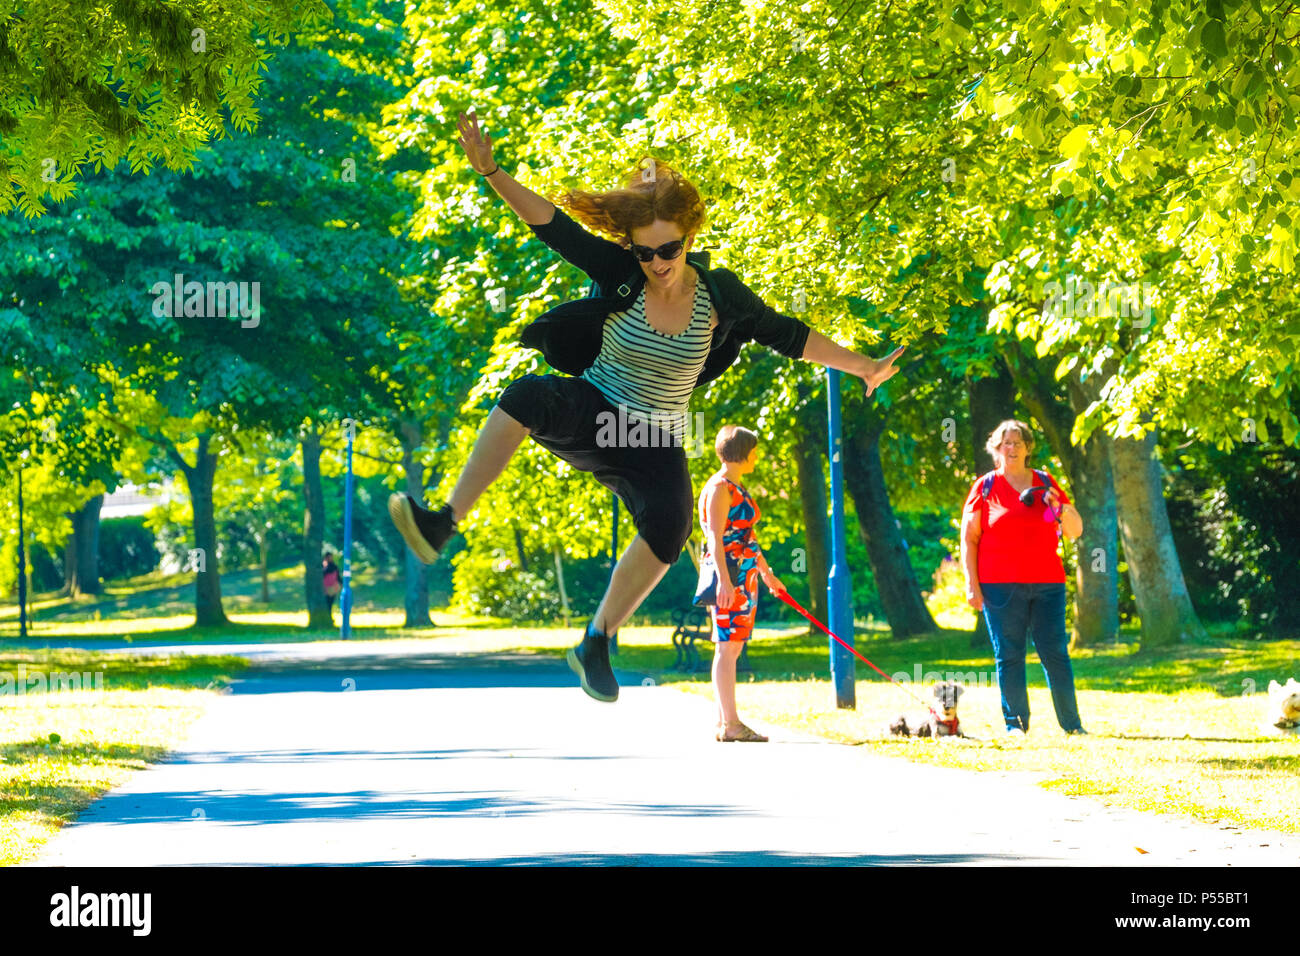 Aberystwyth, Wales, UK. 25th June, 2018.   UK Weather:  A young woman leaps for joy as she walks  along the tree lined Plas Crug park in Aberystwyth, at the start of what promises to be yet another scintillating day of hot unbroken sunshine.  The UK is heading  into a mini heatwave, with temperatures forecast to hit 29º or 30º Celsius by the middle of the week  photo © Keith Morris / Alamy Live News Stock Photo